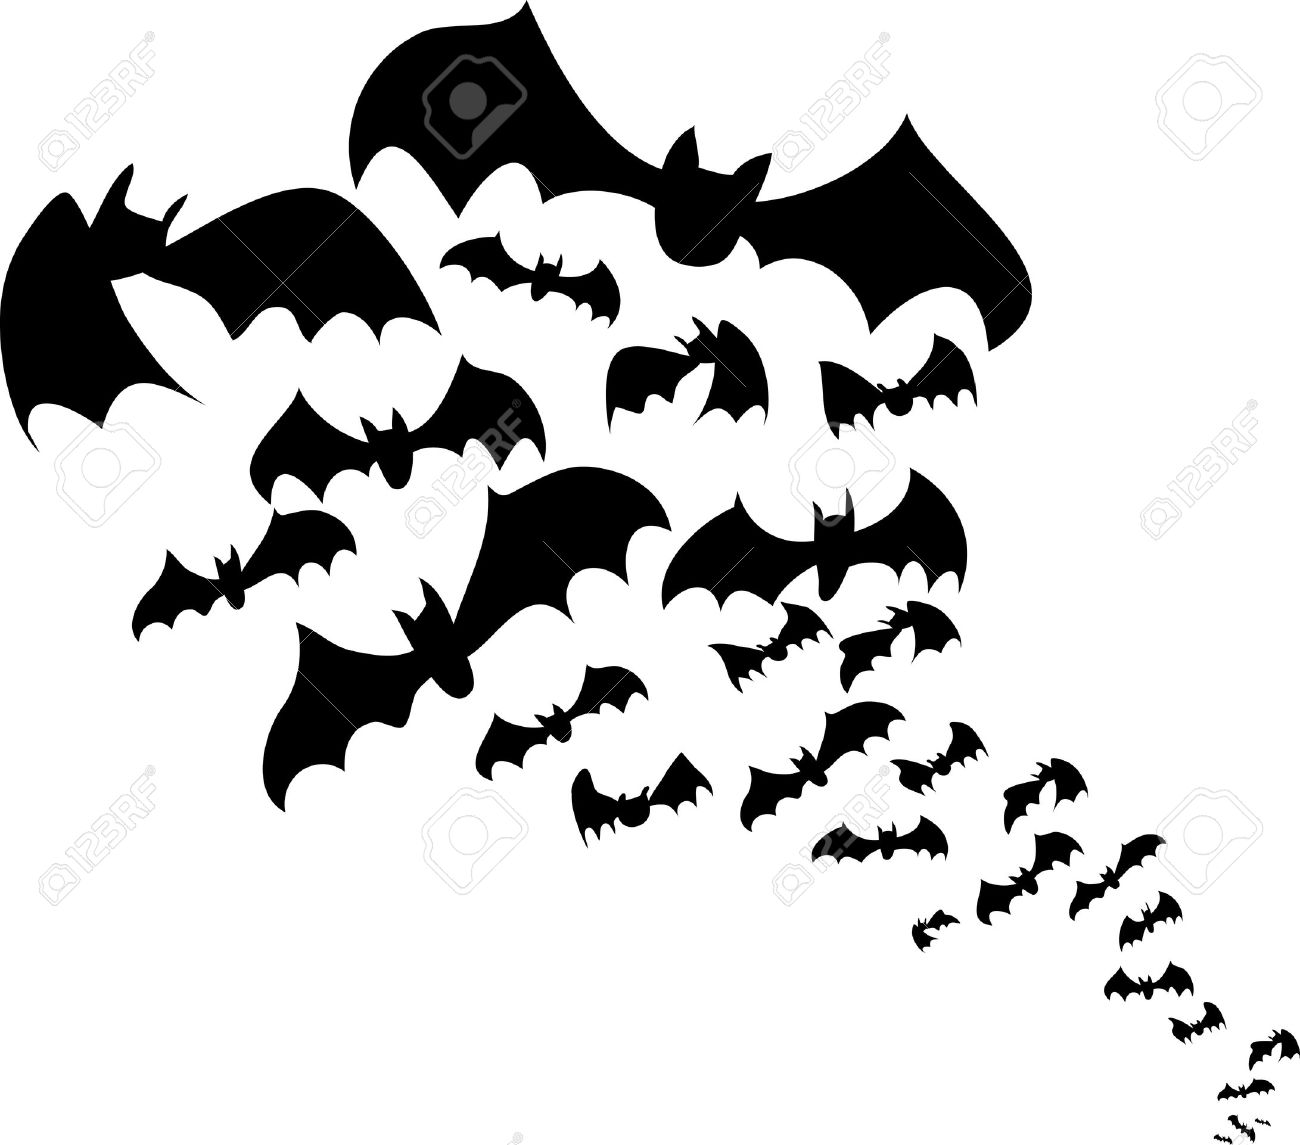 flying bats flock black silhouettes for halloween royalty free